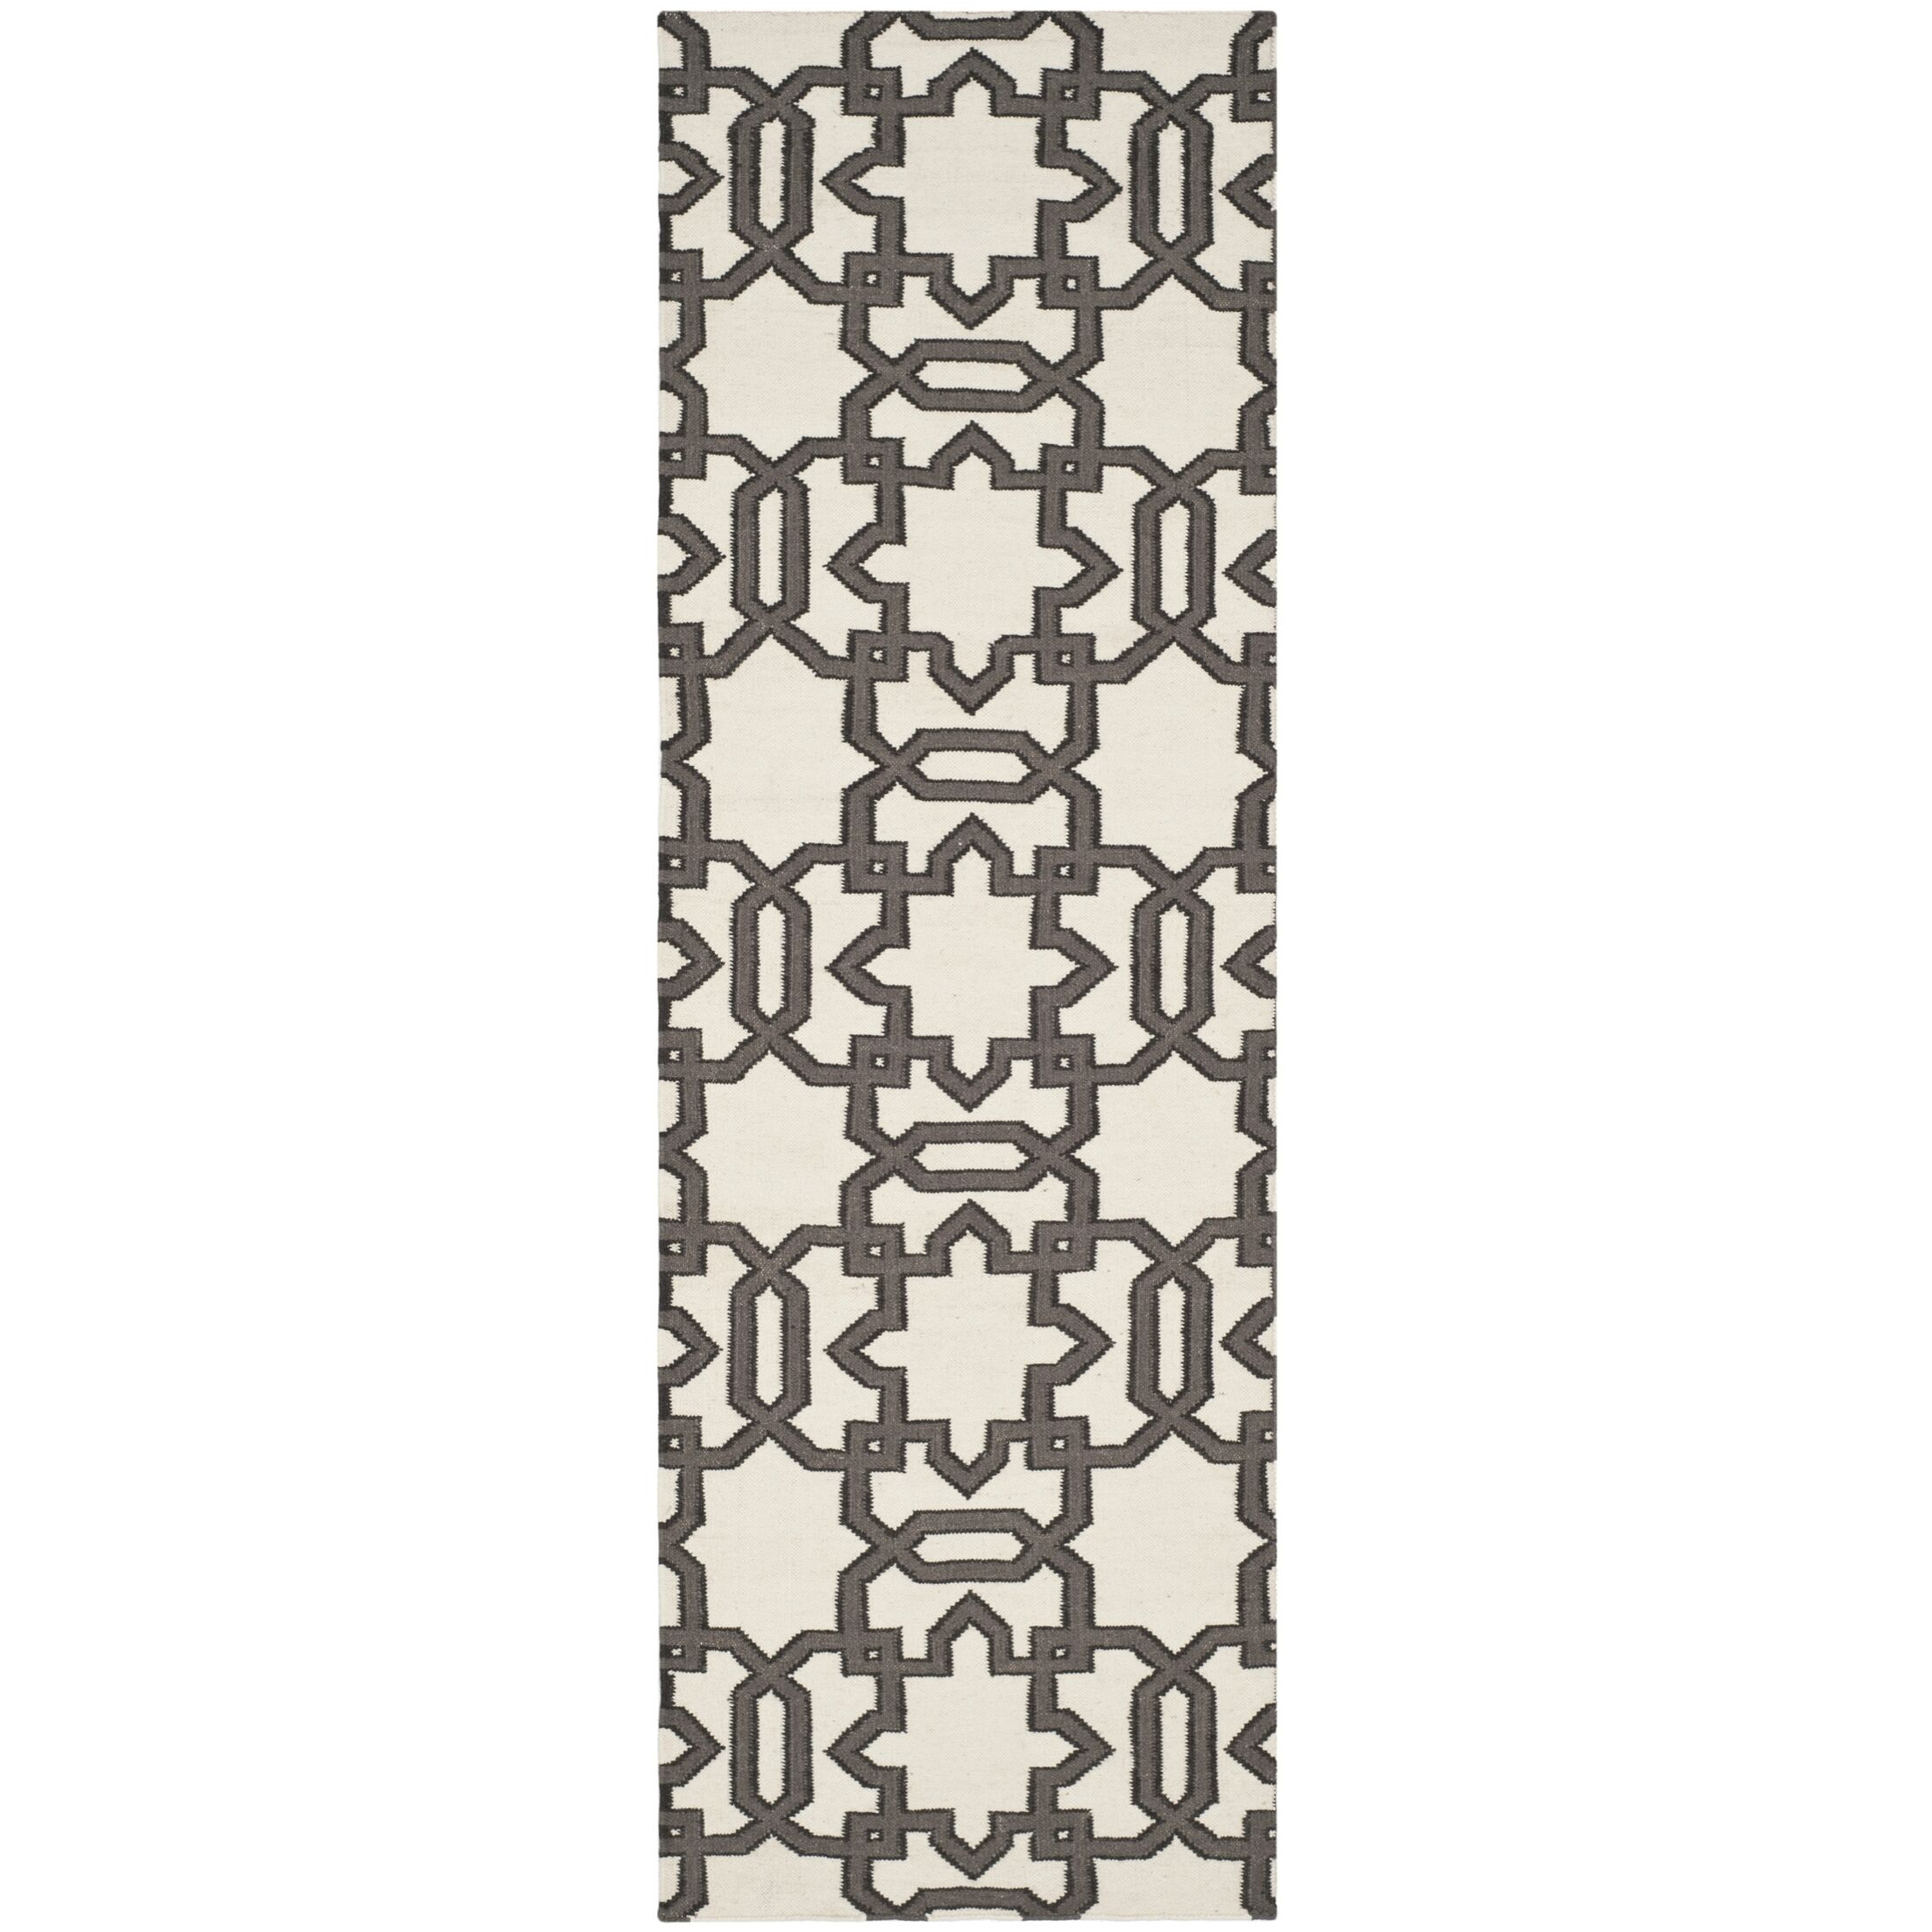 Kata Hand-Woven Wool Ivory/Gray Area Rug Rug Size: Rectangle 6' x 9'